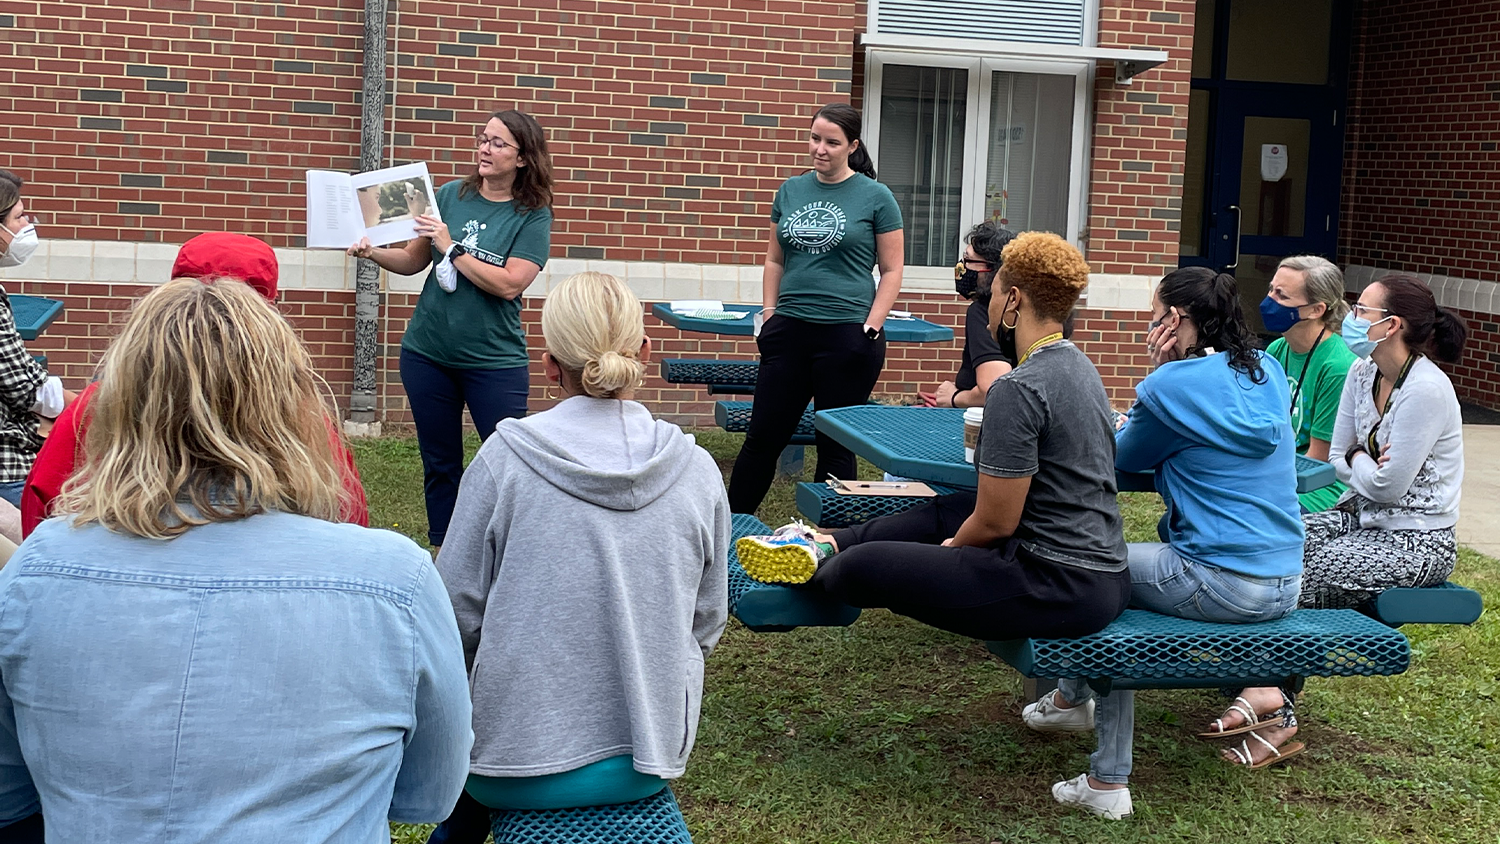 NC State College of Education doctoral students lead a professional development workshop to help teachers bring lessons outdoors